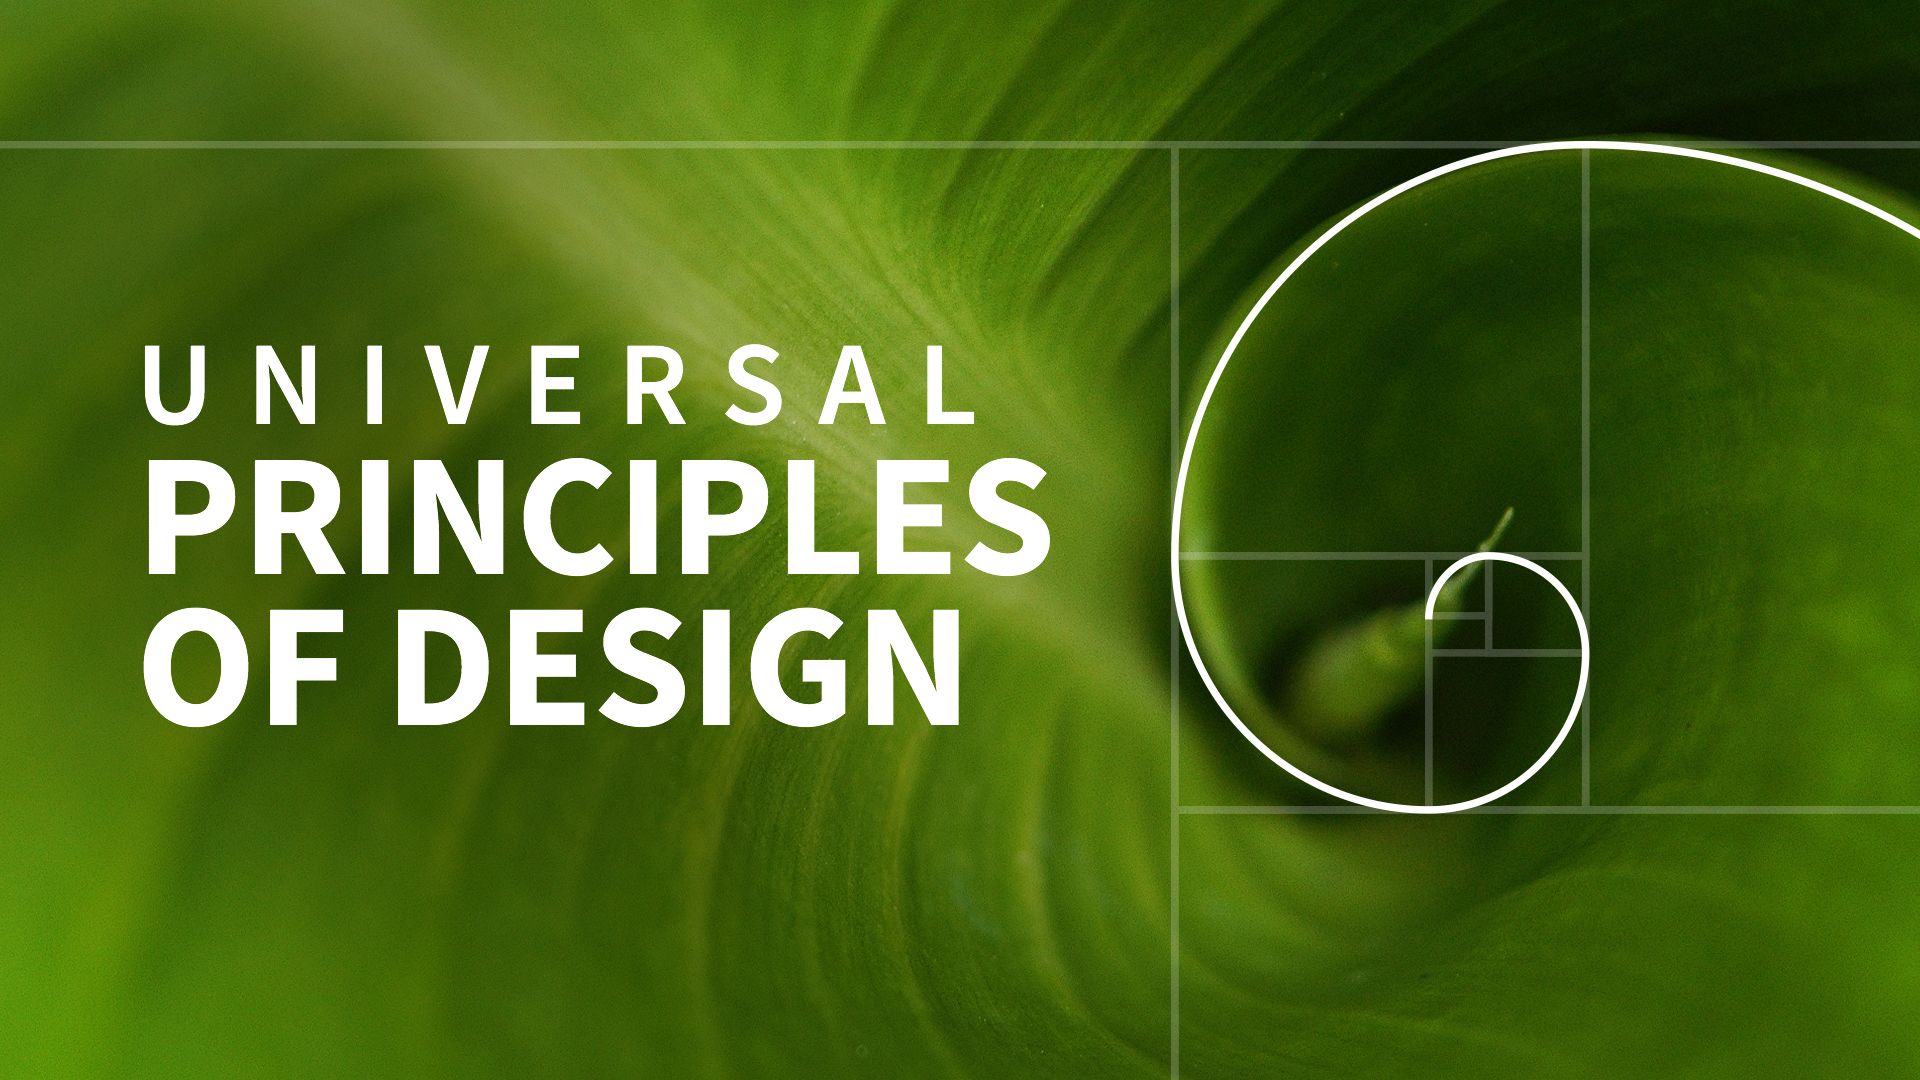 Figure ground: Universal Principles of Design